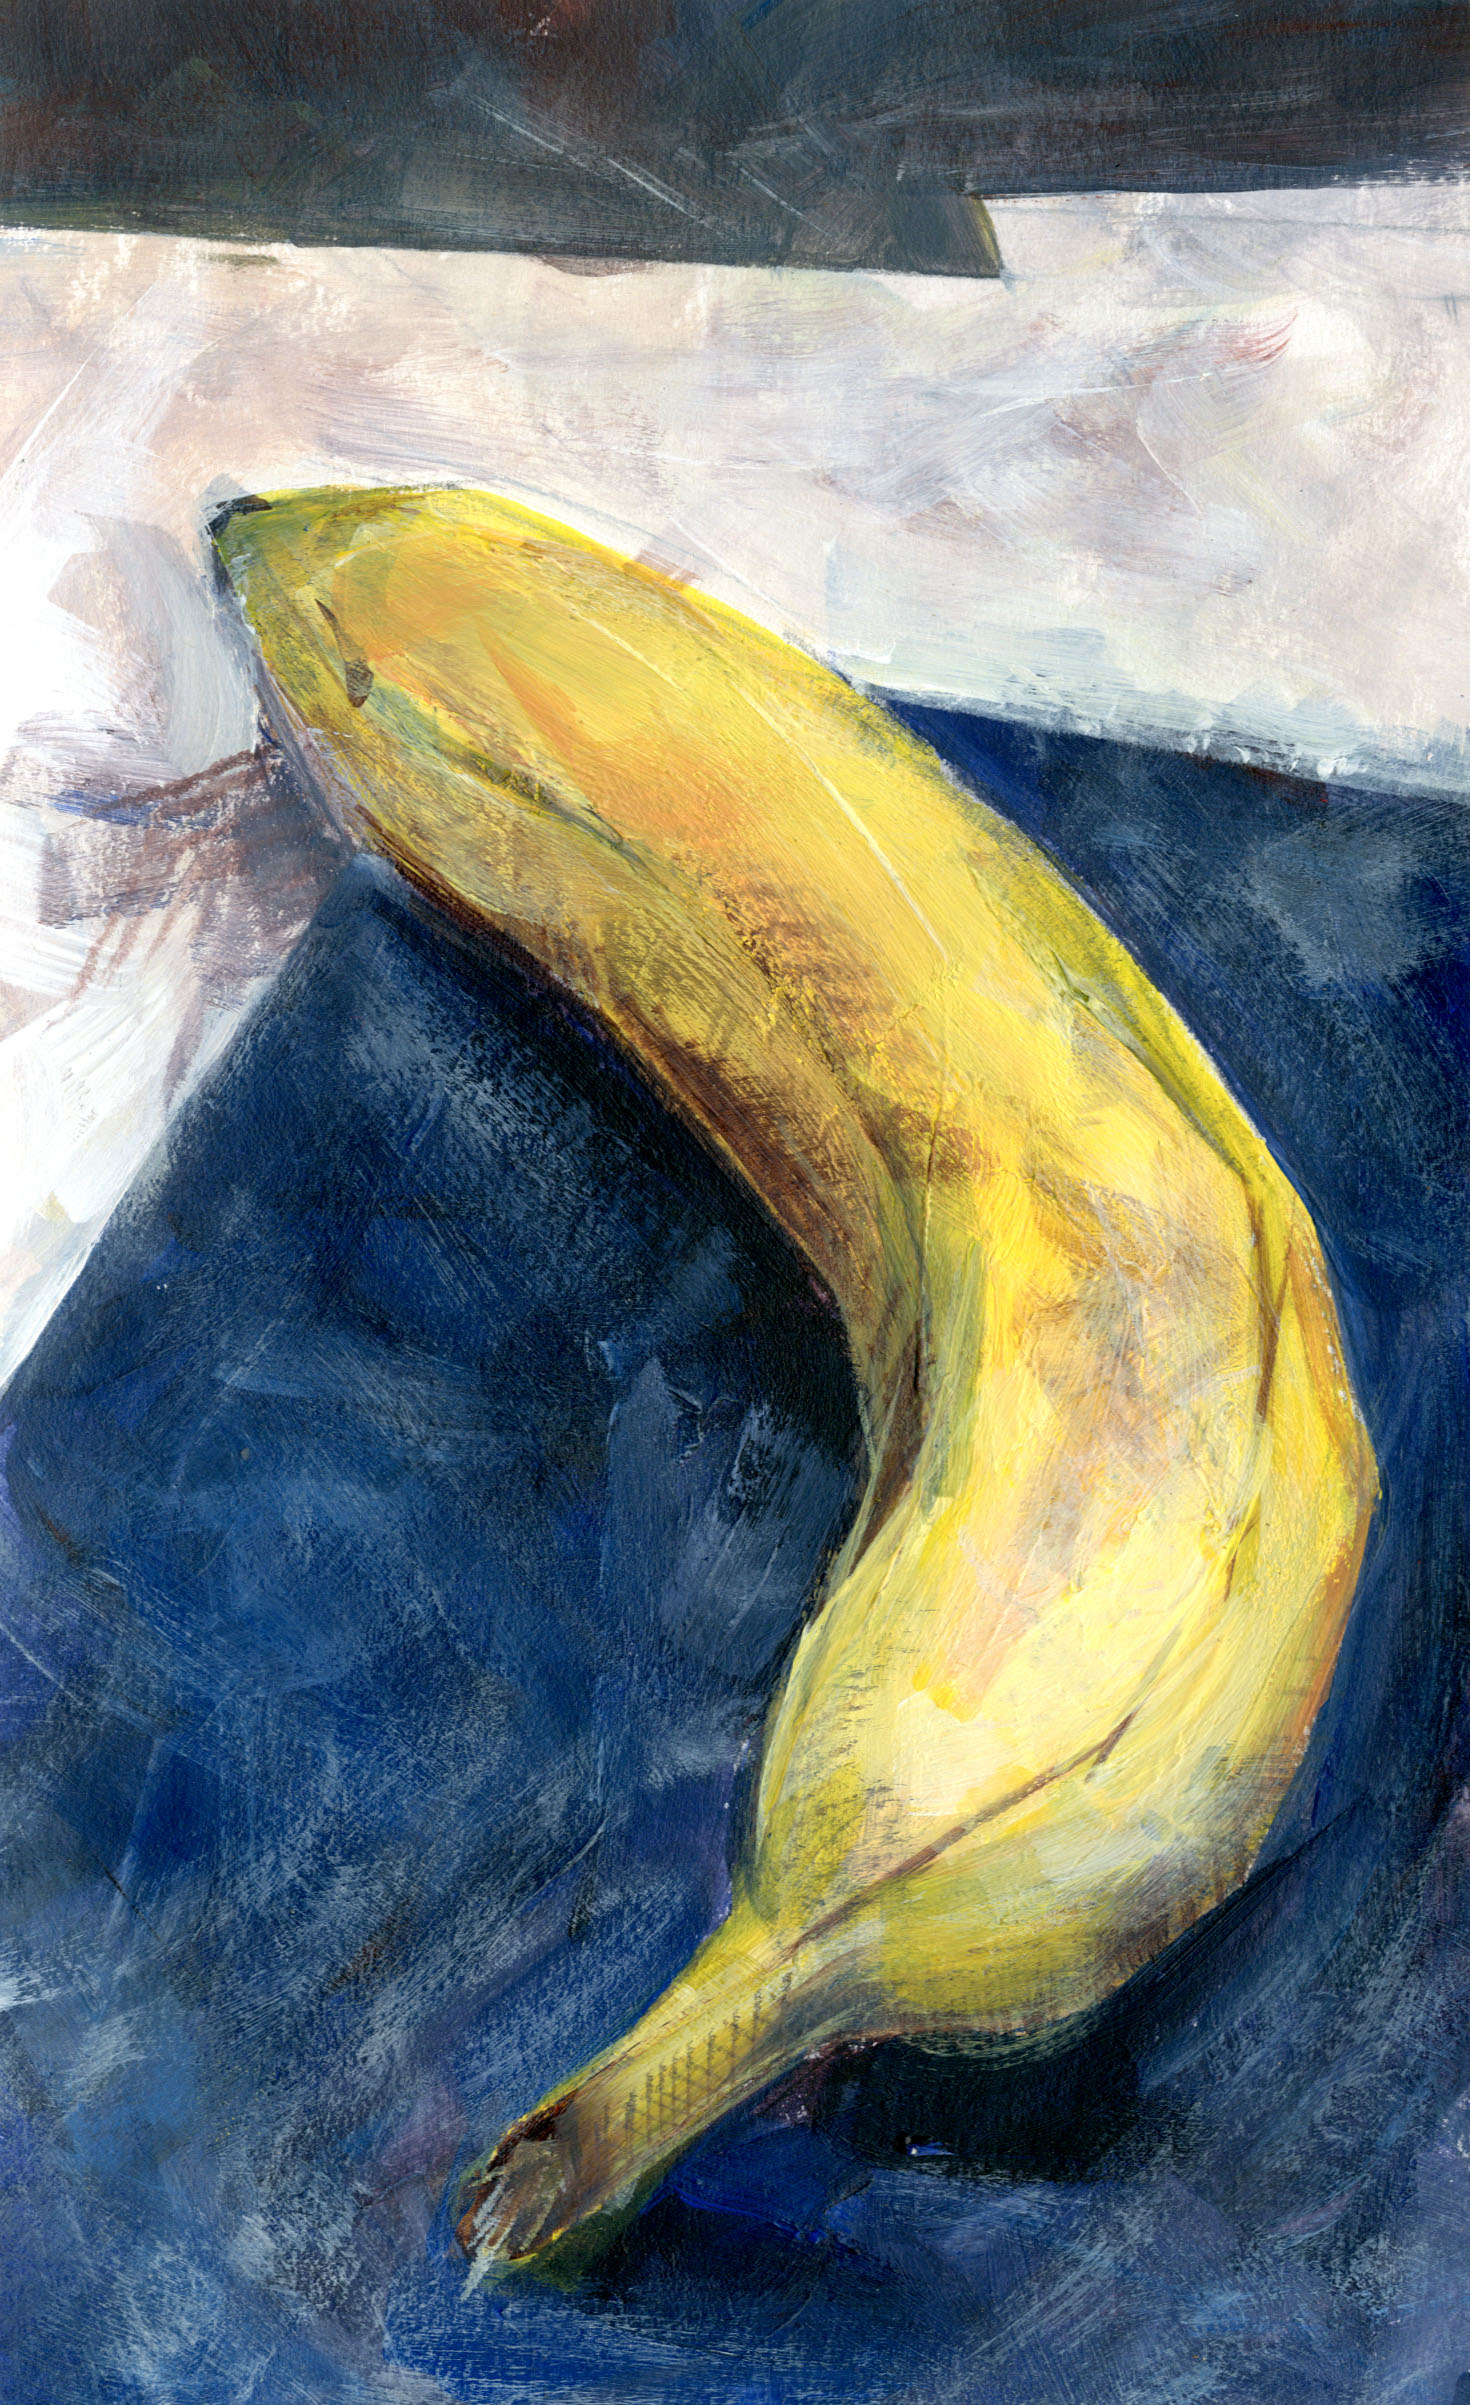 27) Painting of fruit v.1.jpg